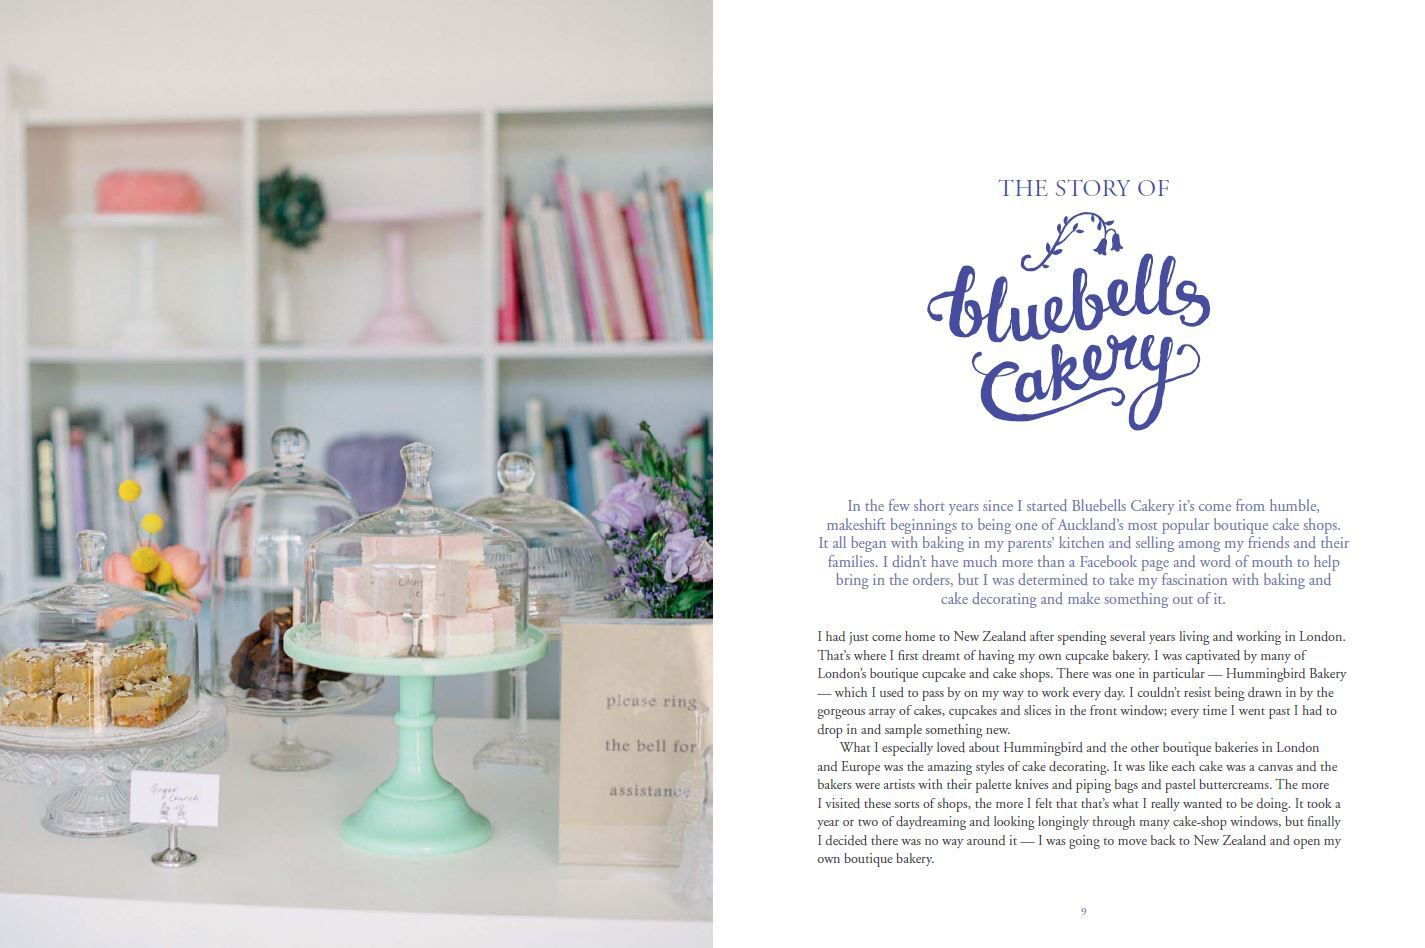 Bluebells Cakery by Karla Goodwin image